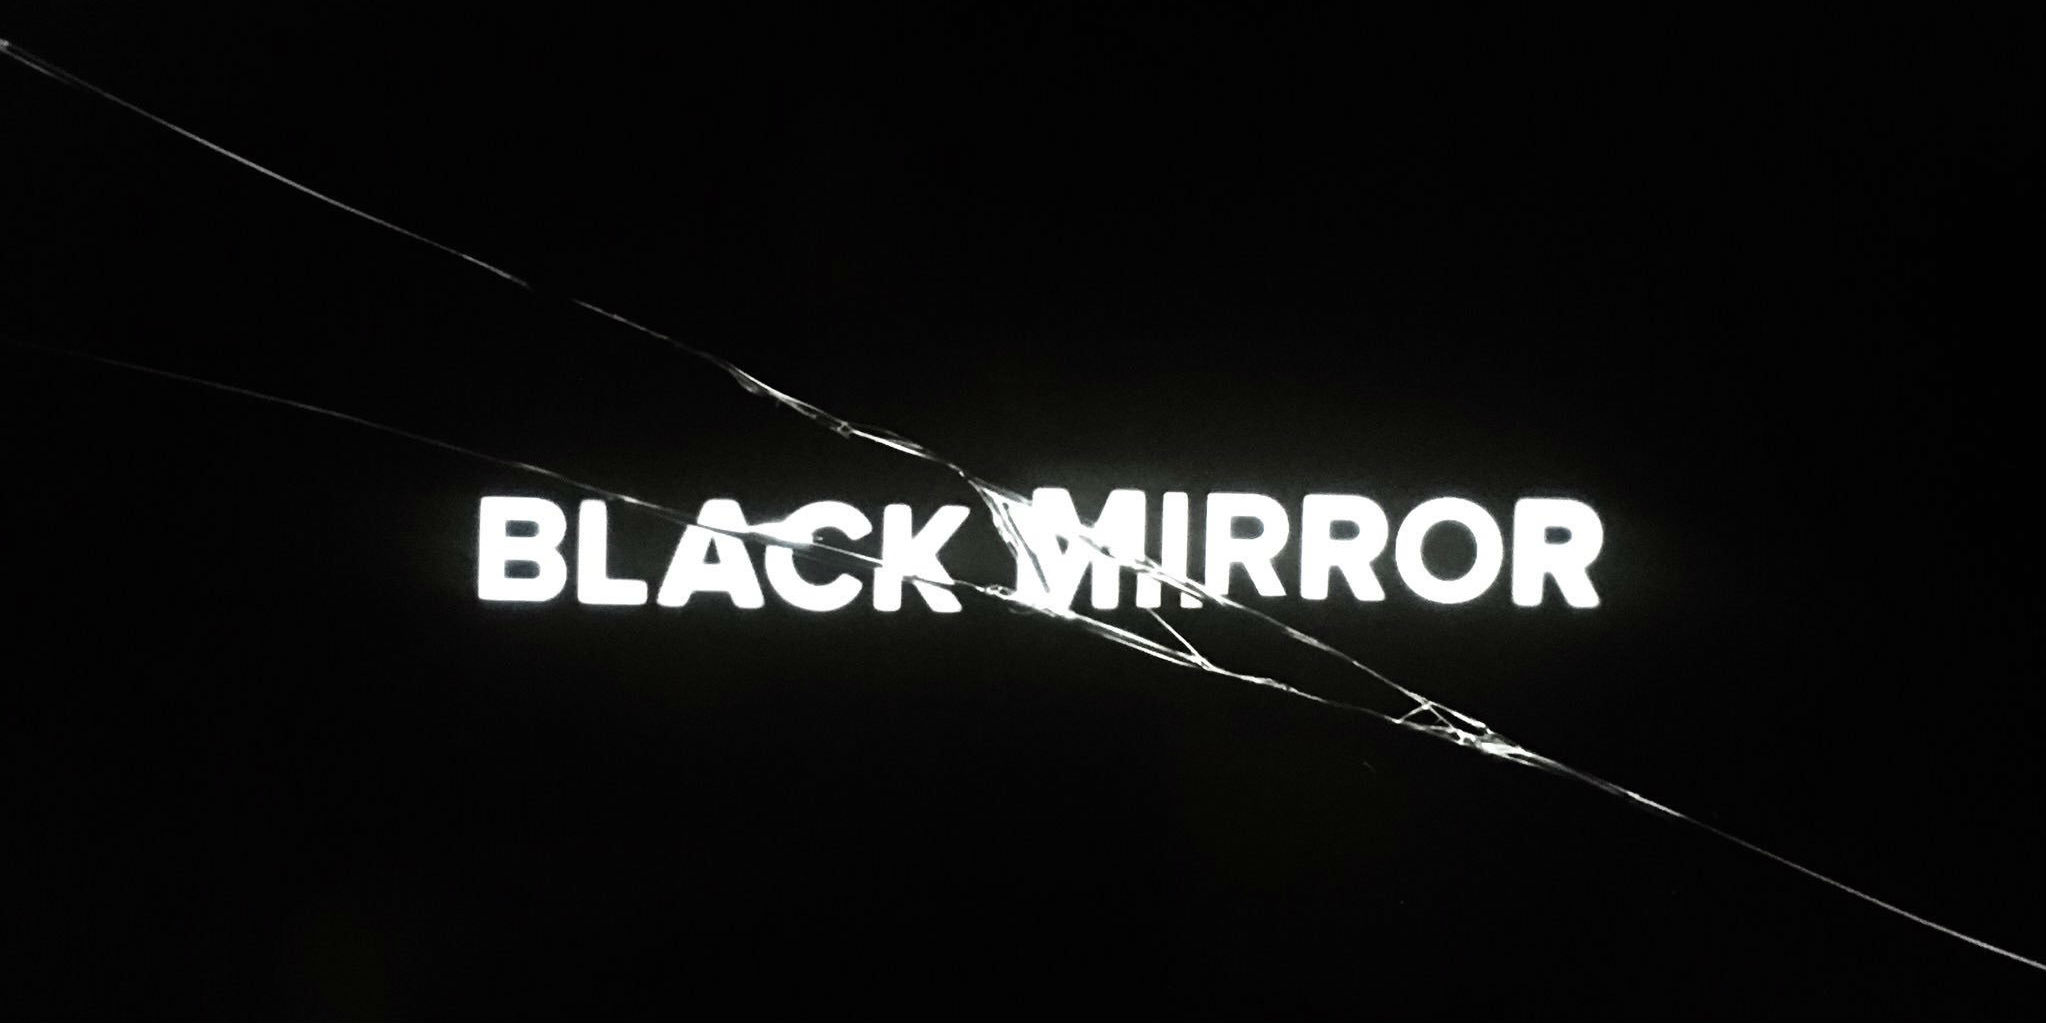 Black Mirror Season 4 Premiere Date Finally Revealed